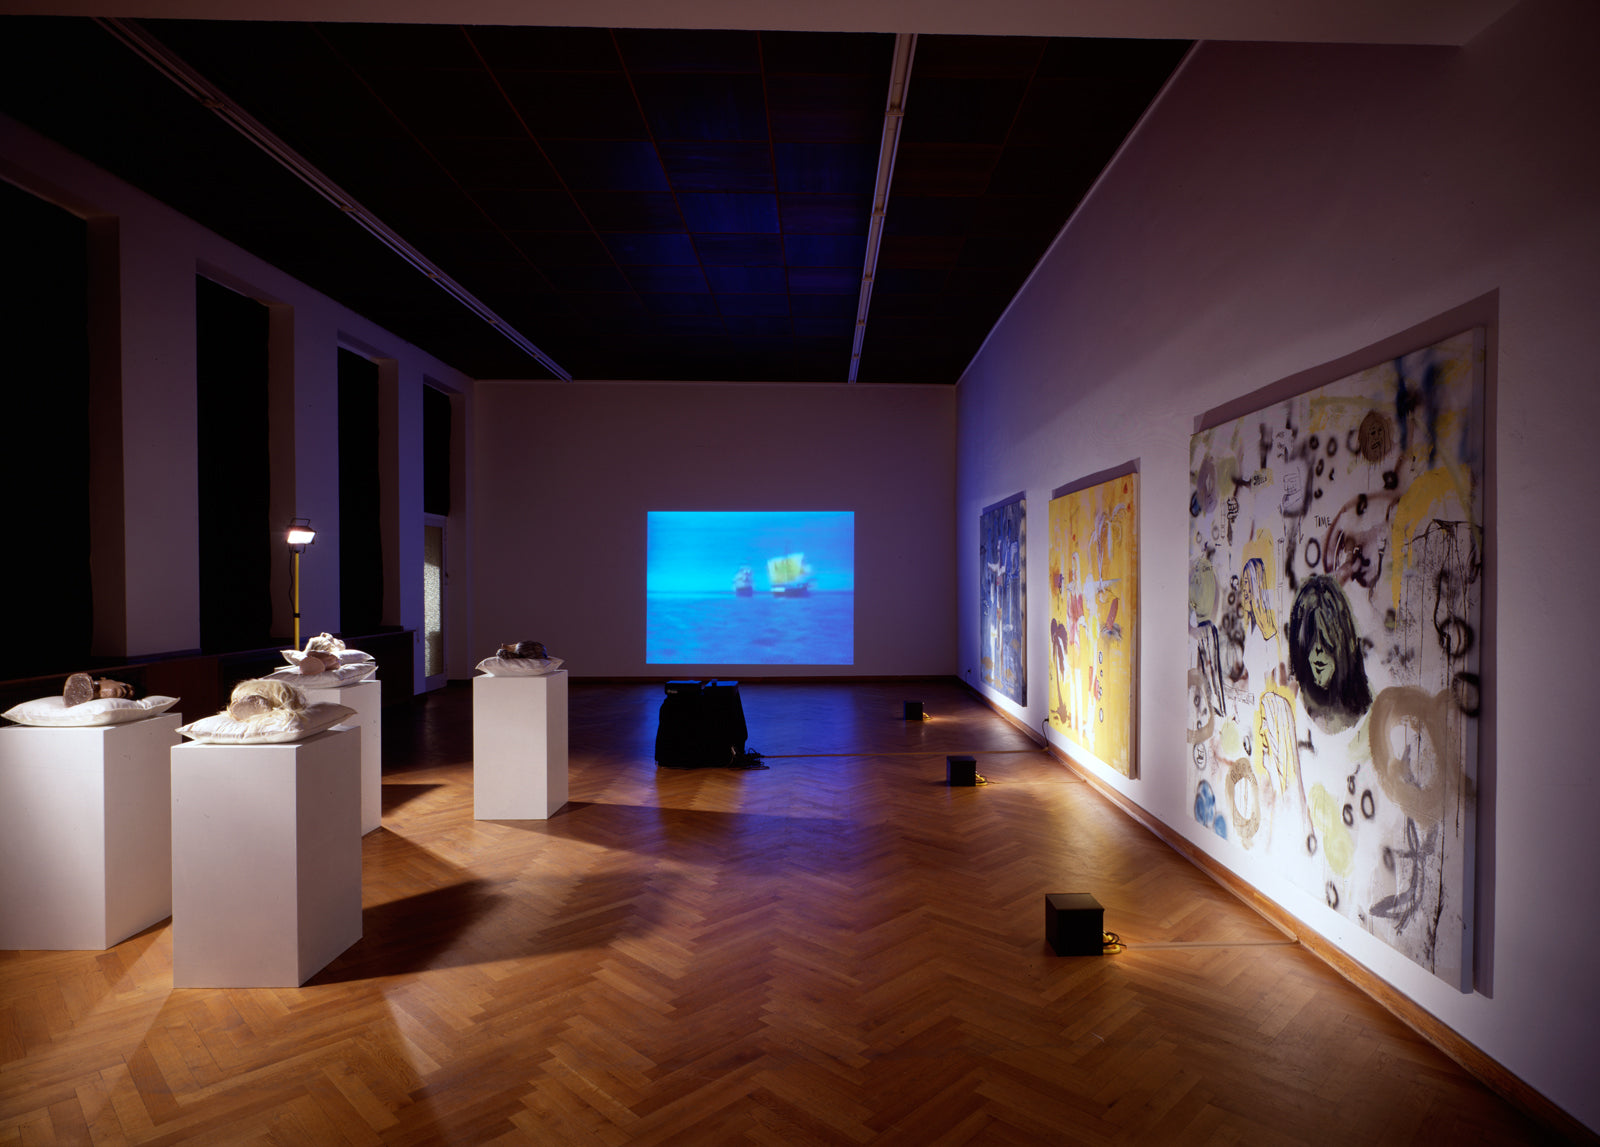 Thaddeus Strode, Ghost Sisters Of The Sun, Installation view, 2000, Galerie Michael Janssen, Cologne